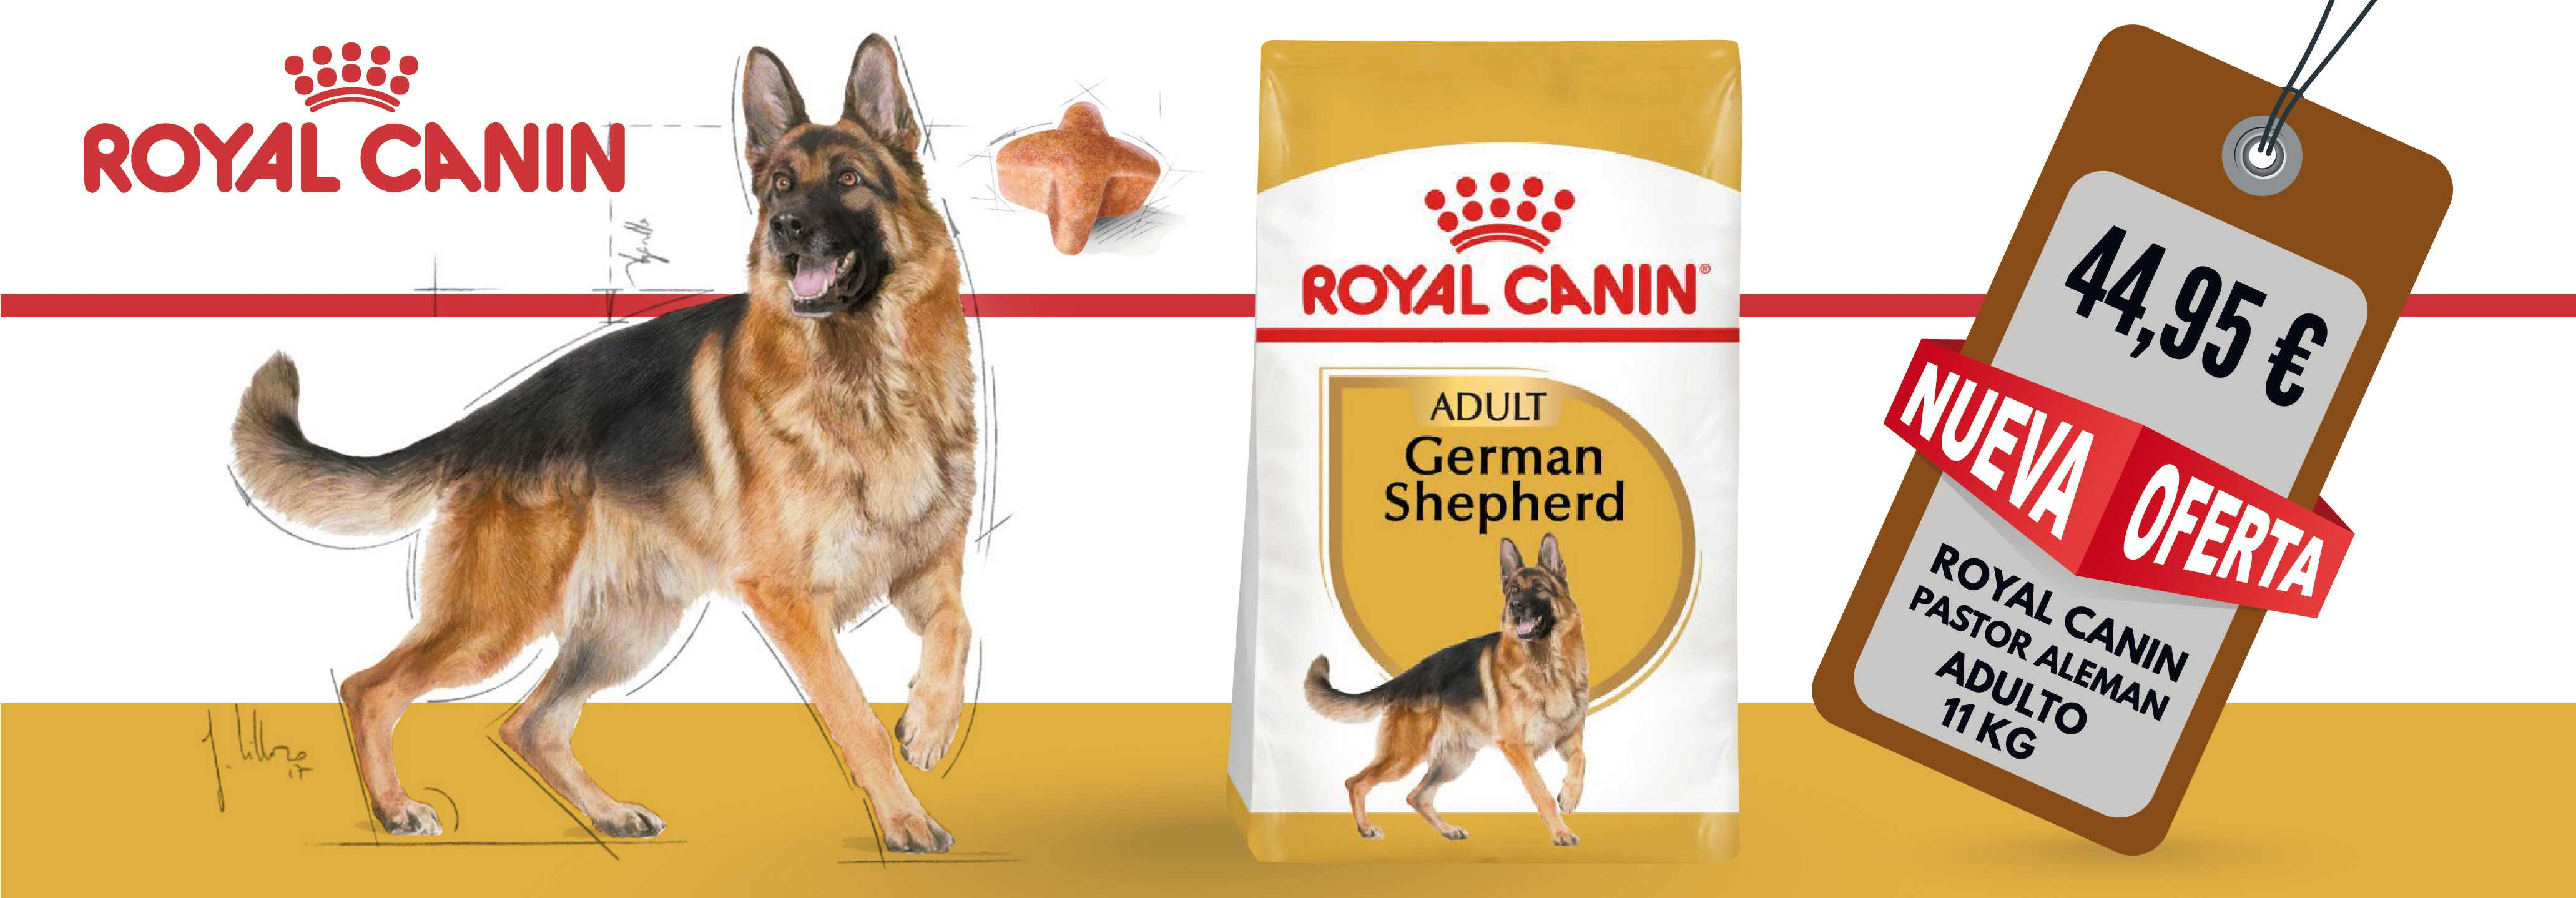 ROYAL CANIN PASTOR ALEMAN ADULT 11 KG